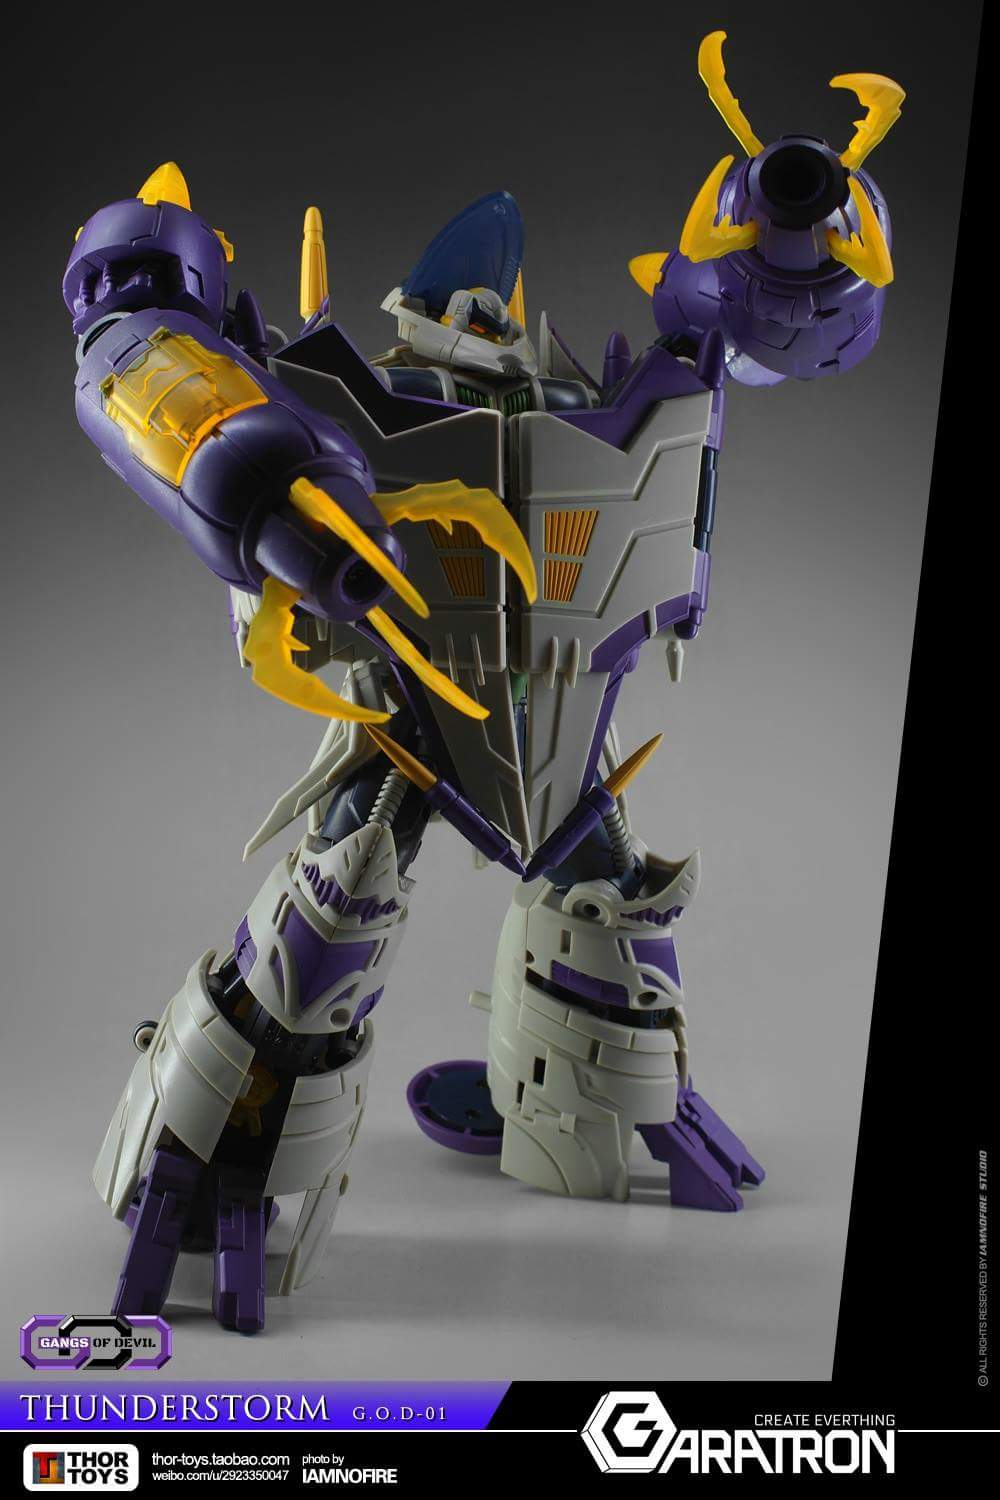 [Garatron] Produit Tiers - Gand of Devils G.O.D-01 Thunderstorm - aka Thunderwing des BD TF d'IDW - Page 2 7eahR8nT